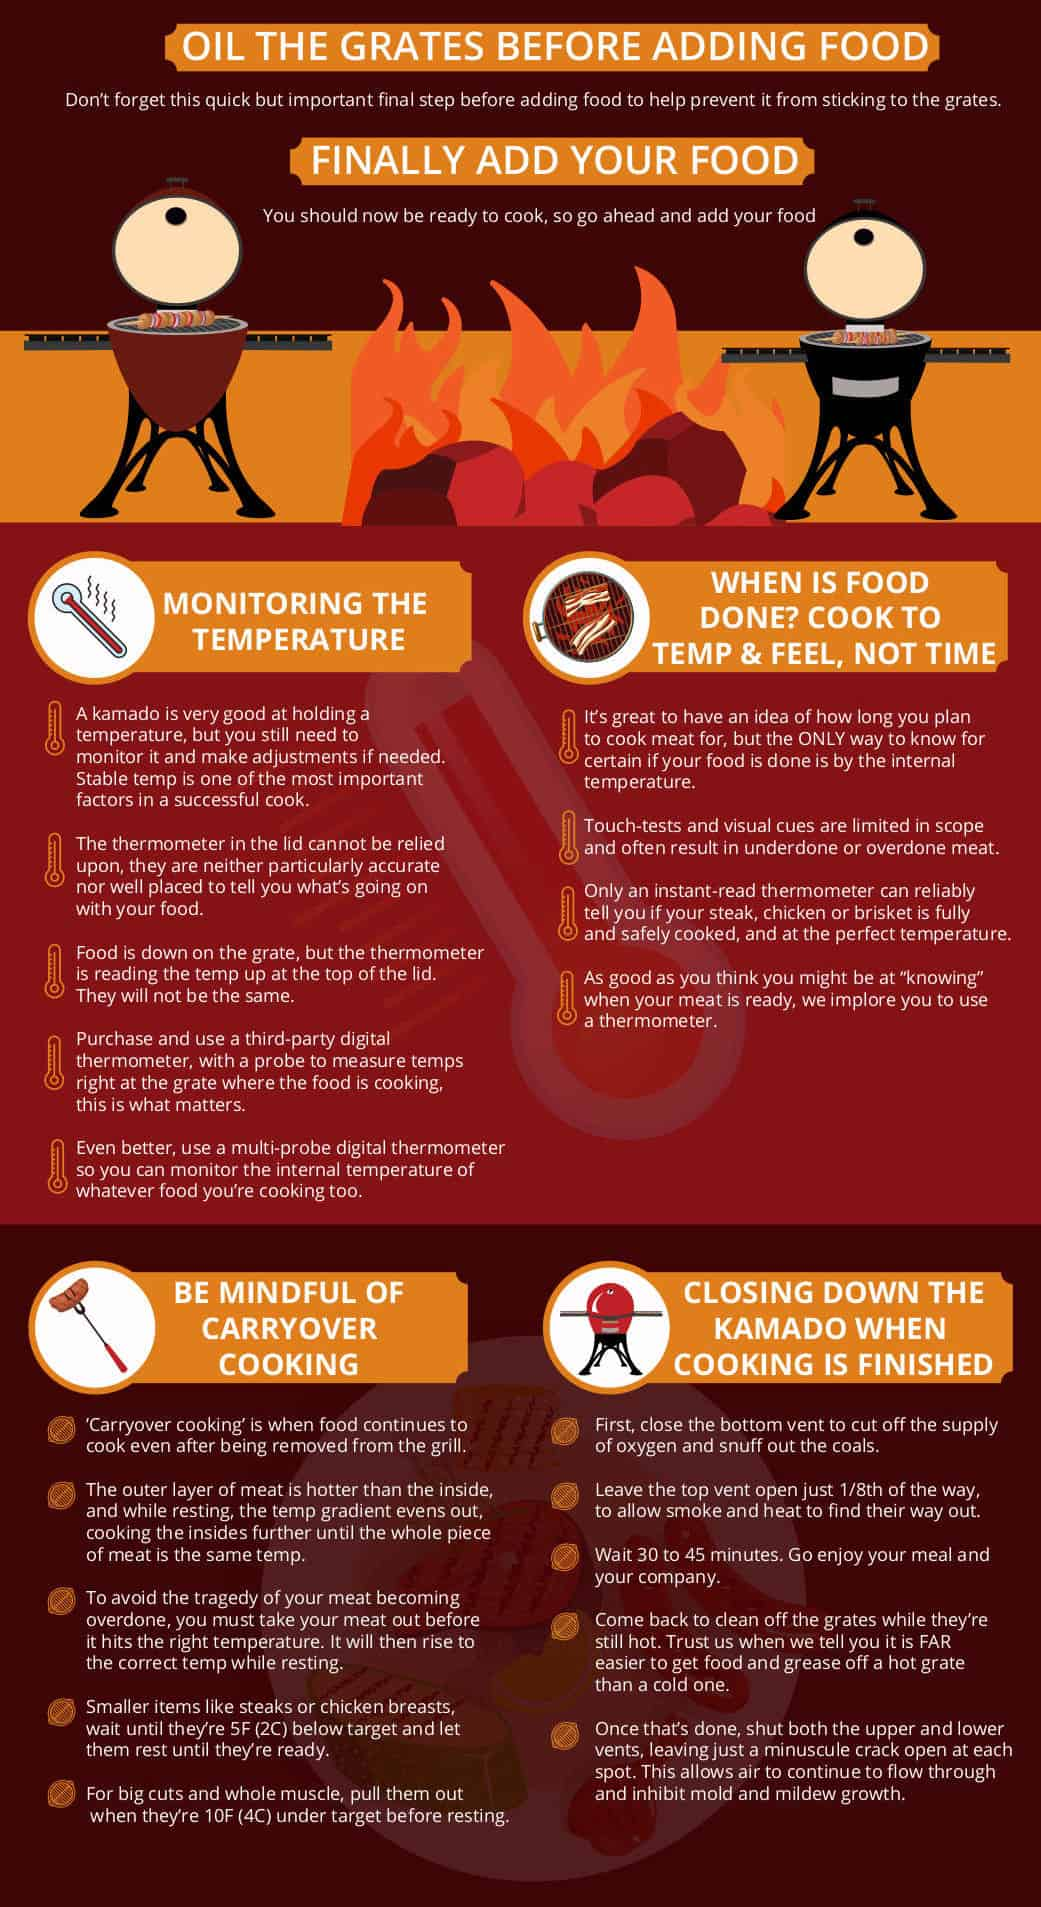 Text graphic detailing how and when to add food to your kamado